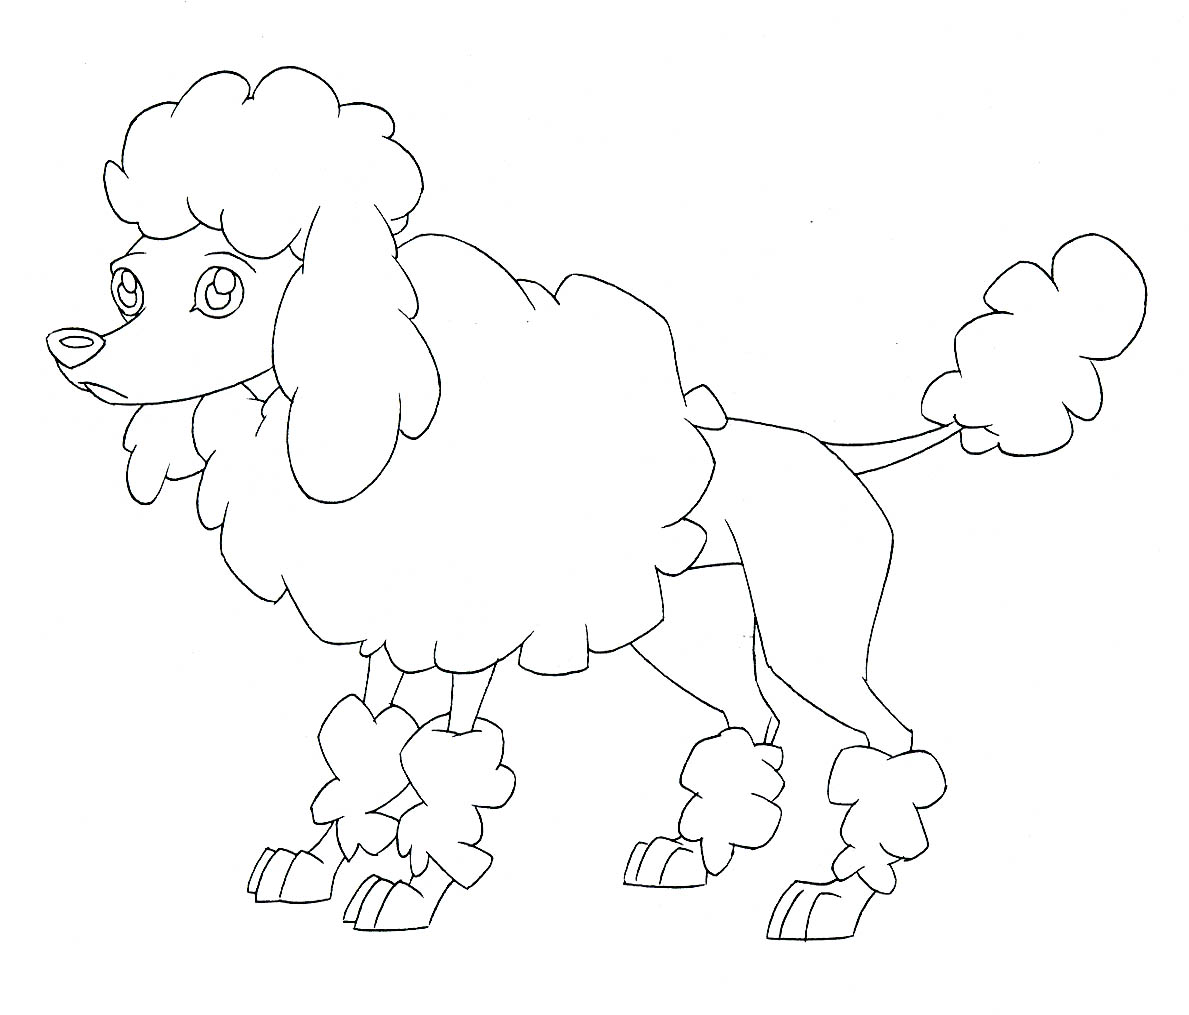 poodle coloring pages - standard poodle coloring pages